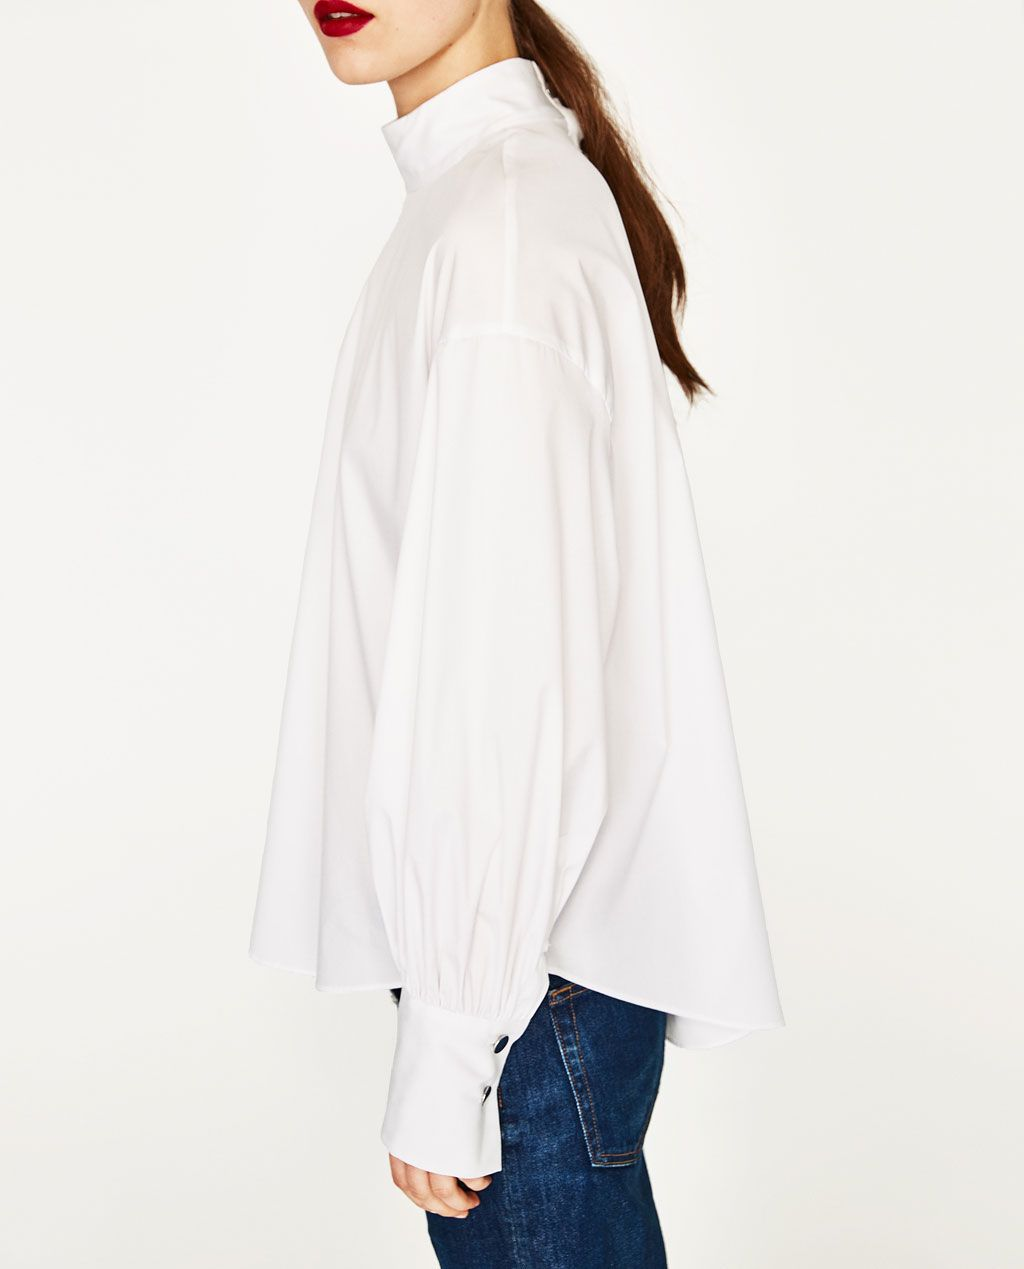 6e9a0345 POPLIN TOP WITH PLEATED SLEEVES-View All-TOPS-WOMAN | ZARA United States